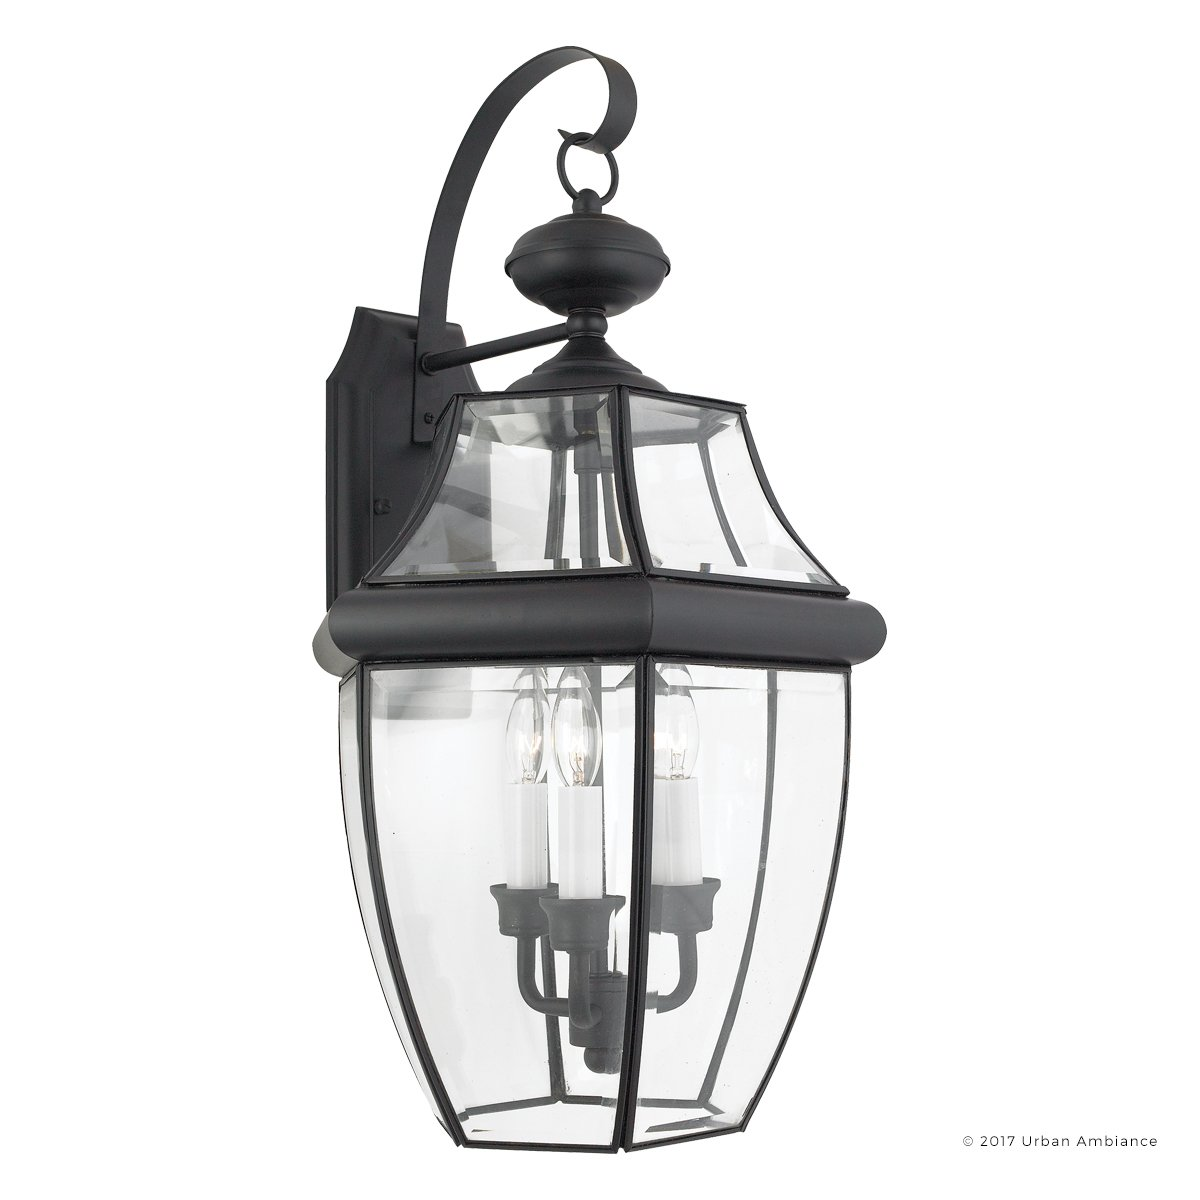 Luxury Colonial Outdoor Wall Light, Large Size: 22.5''H x 12.25''W, with Tudor Style Elements, Versatile Design, High-End Black Silk Finish and Beveled Glass, UQL1146 by Urban Ambiance